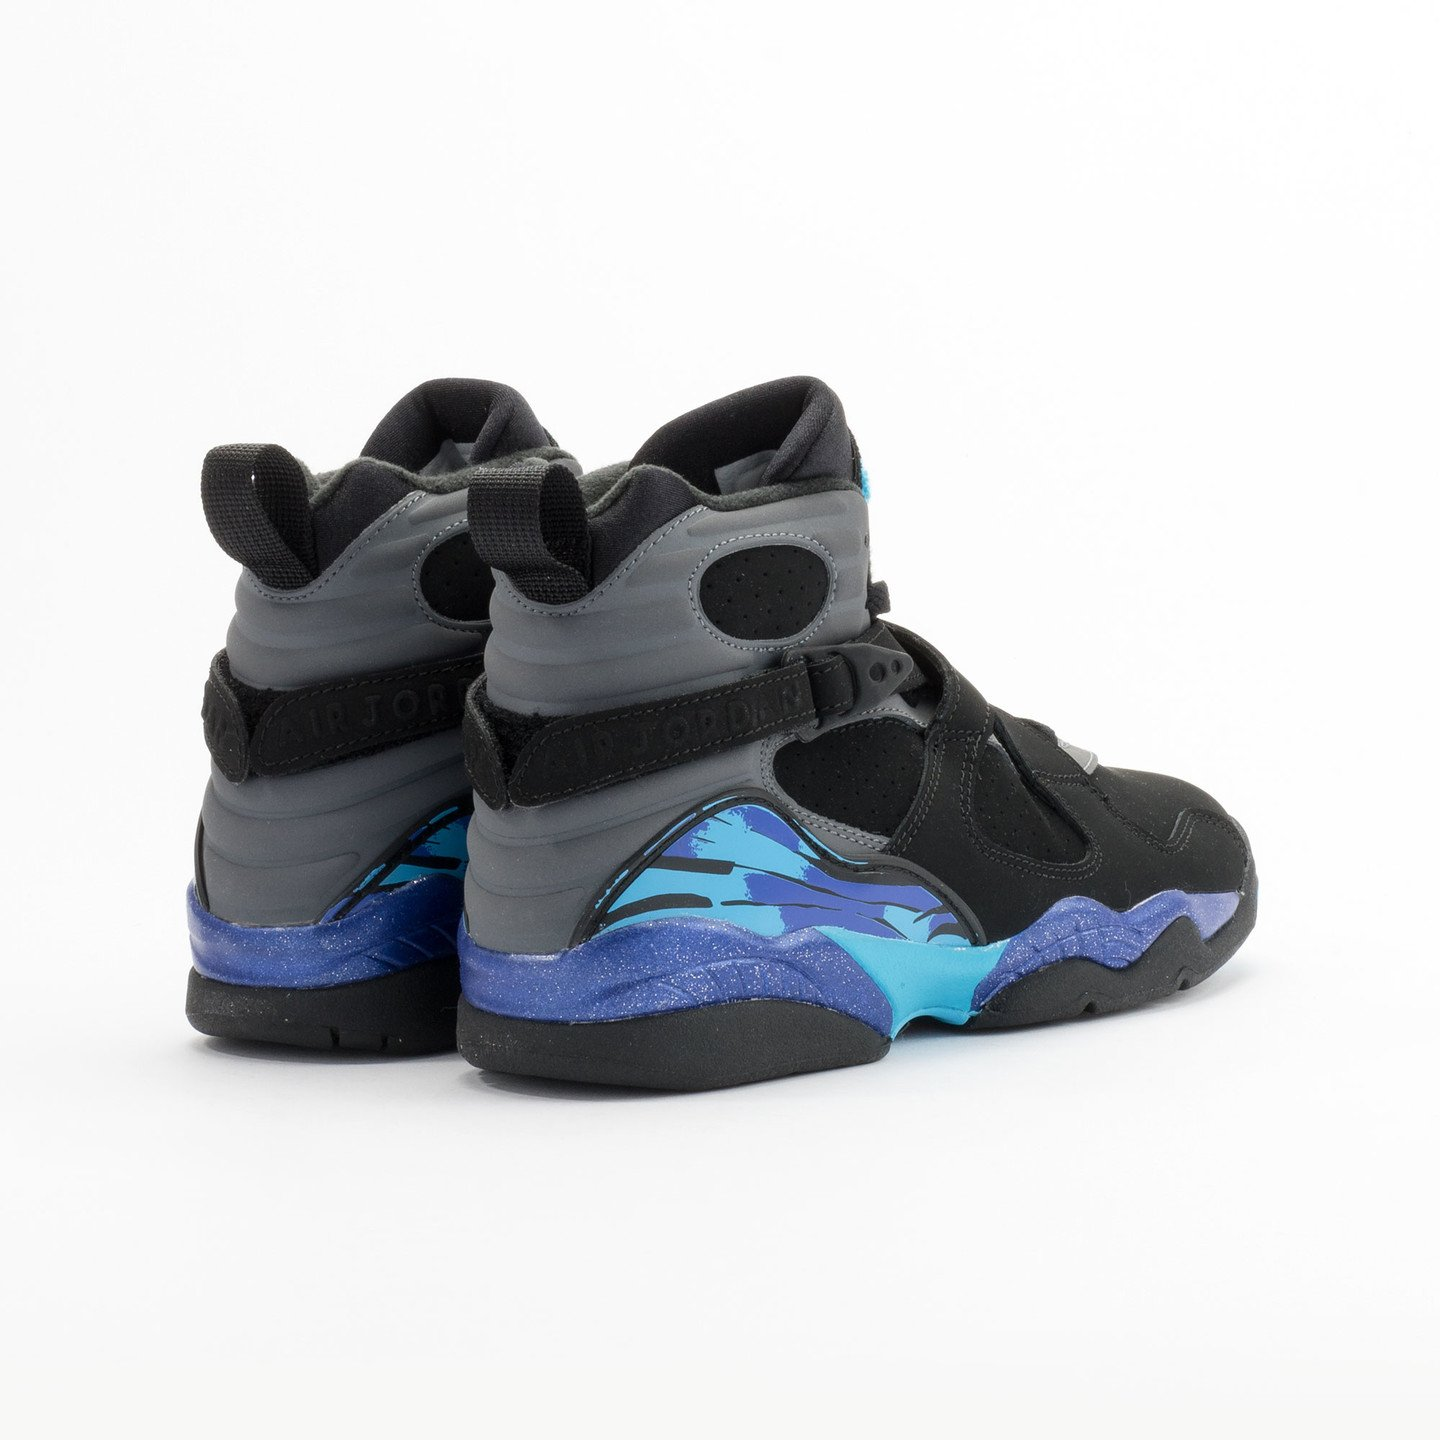 Jordan Air Jordan Retro 8 'Aqua' BG Black/True Red-Flint Grey-Bright Concord 305368-025